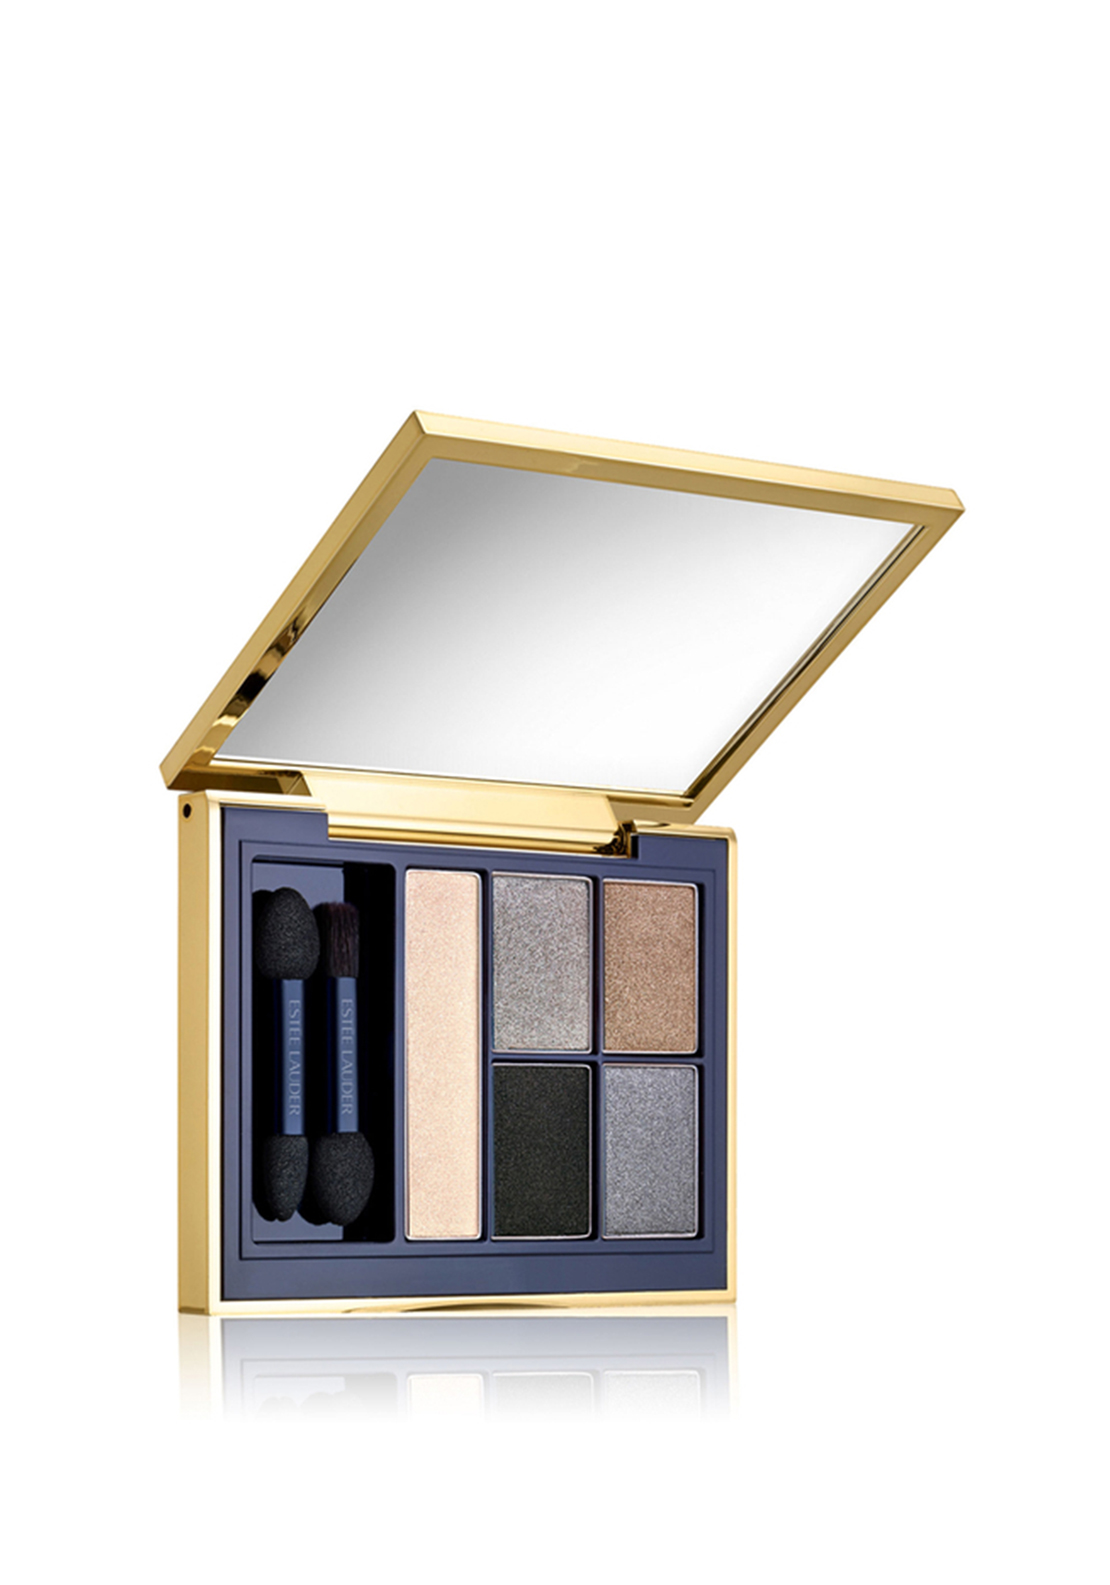 Estee Lauder Pure Colour Envy Eyeshadow Palette, Savage Storm